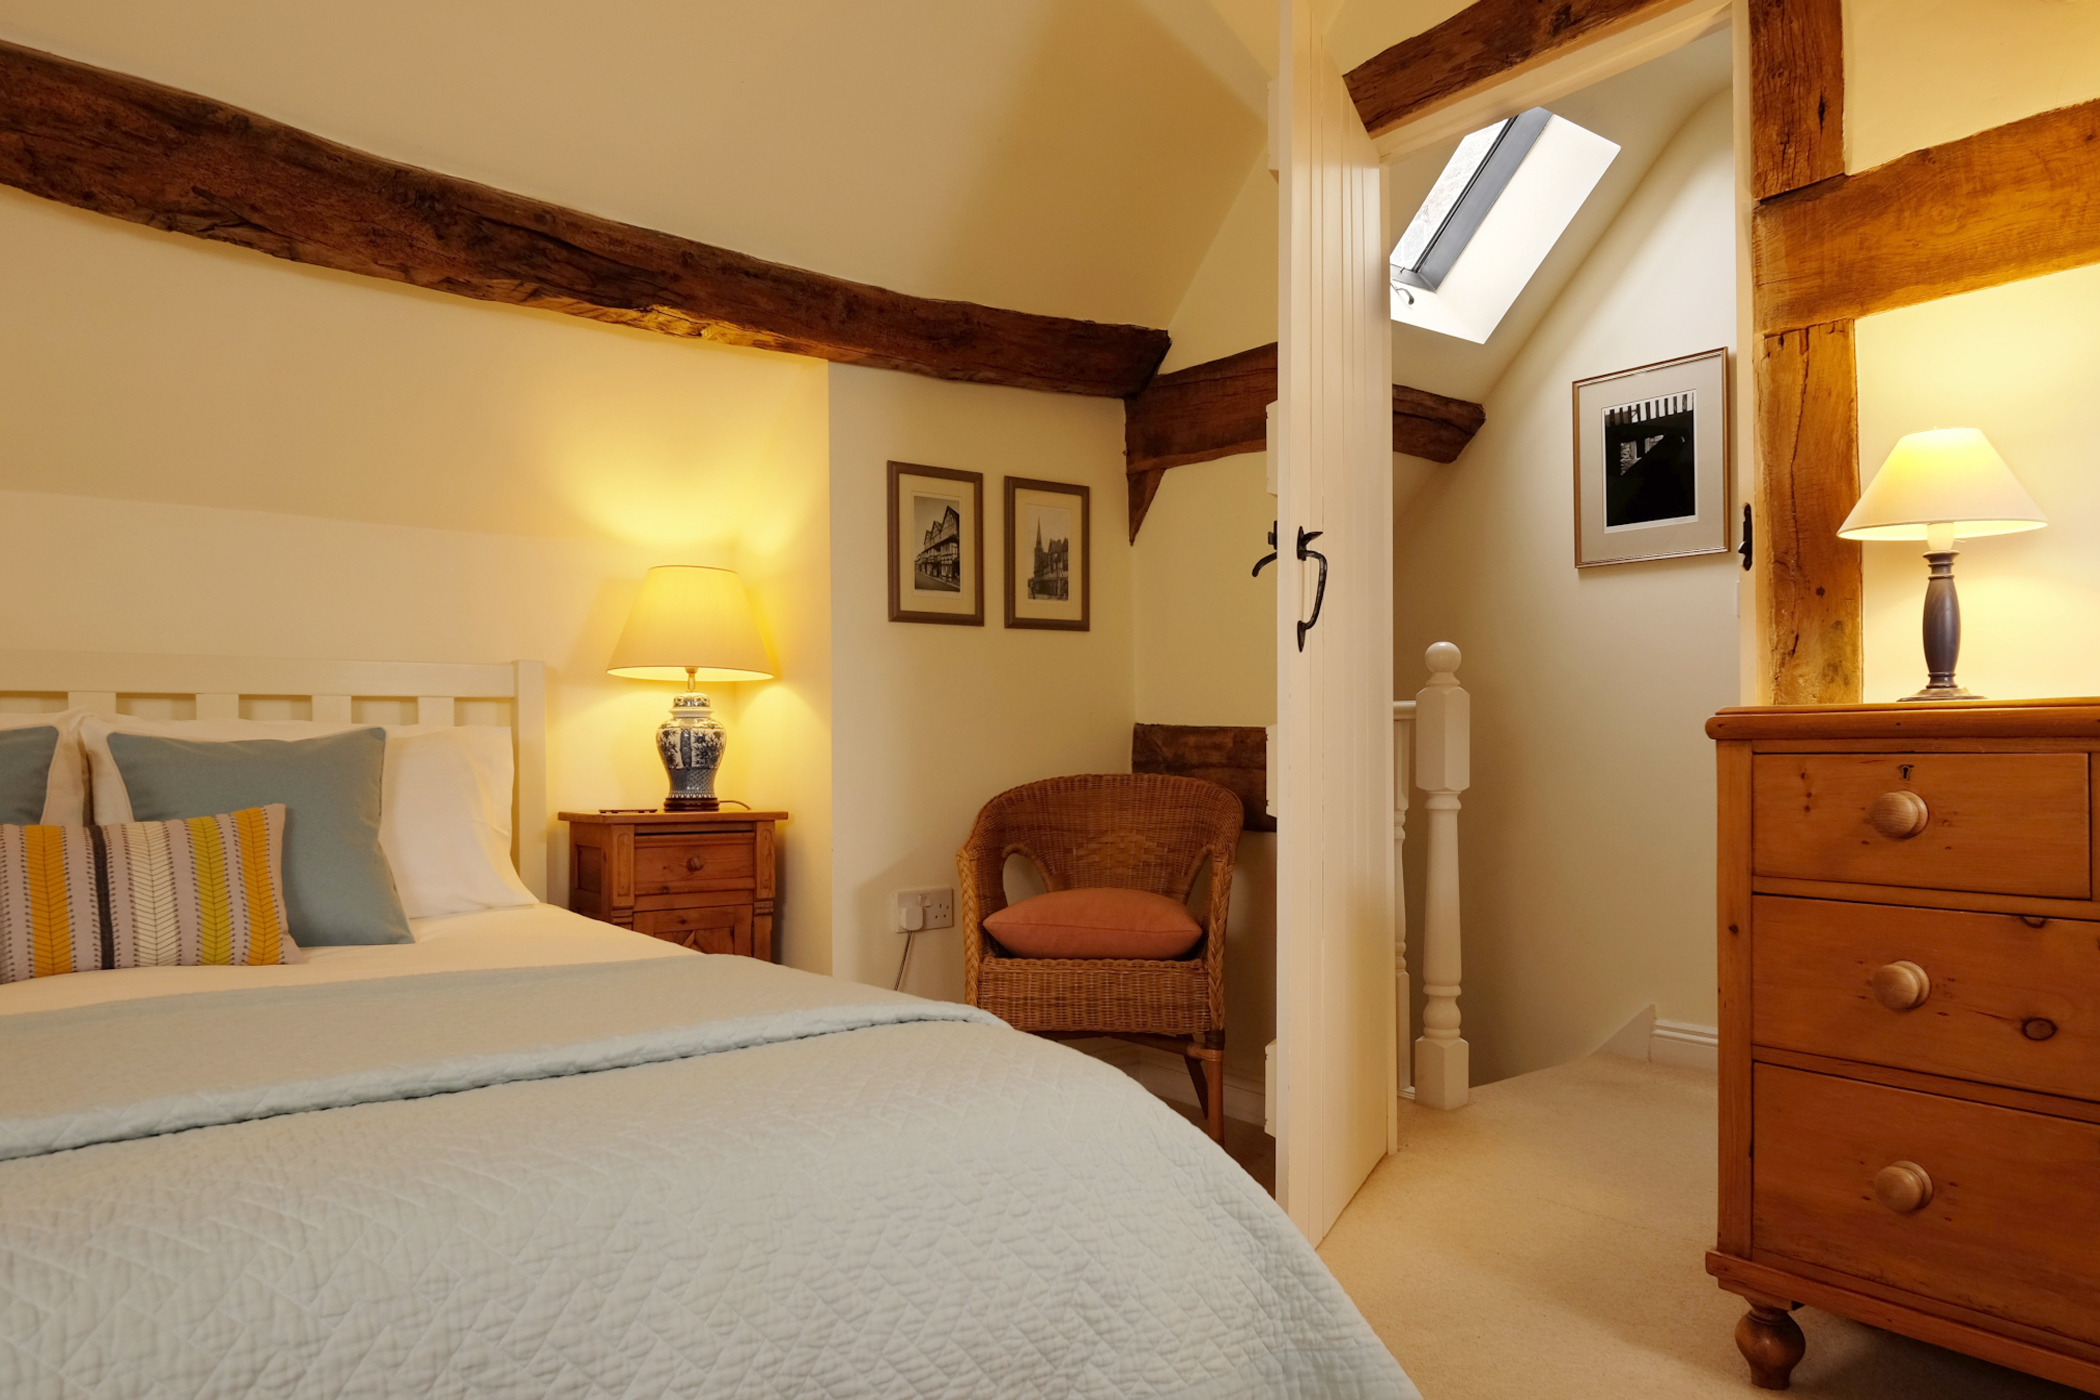 Cottage bedroom and view to landing